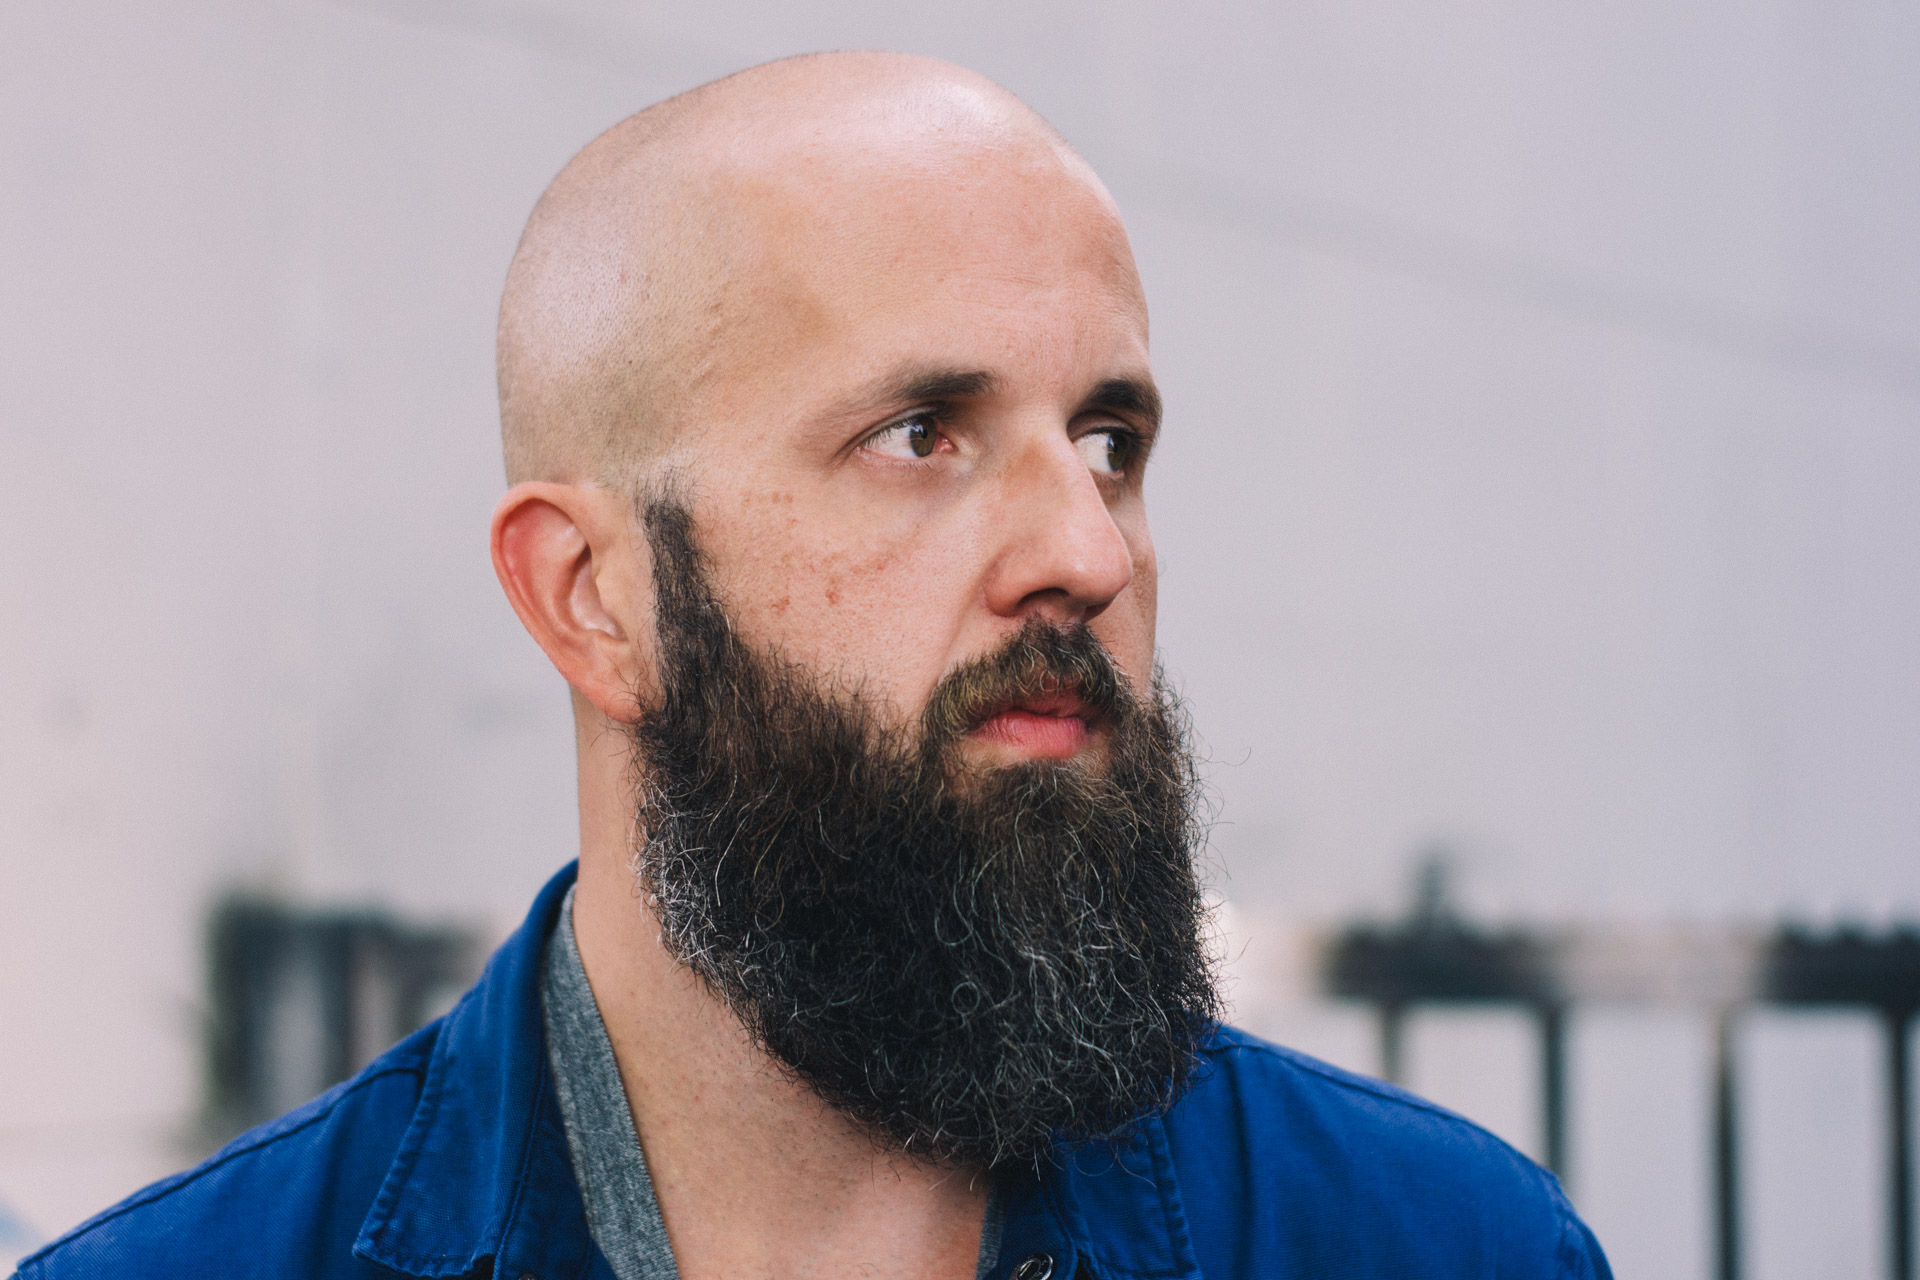 William Fitzsimmons (Photo by Matthijs van der Ven for The Influences)